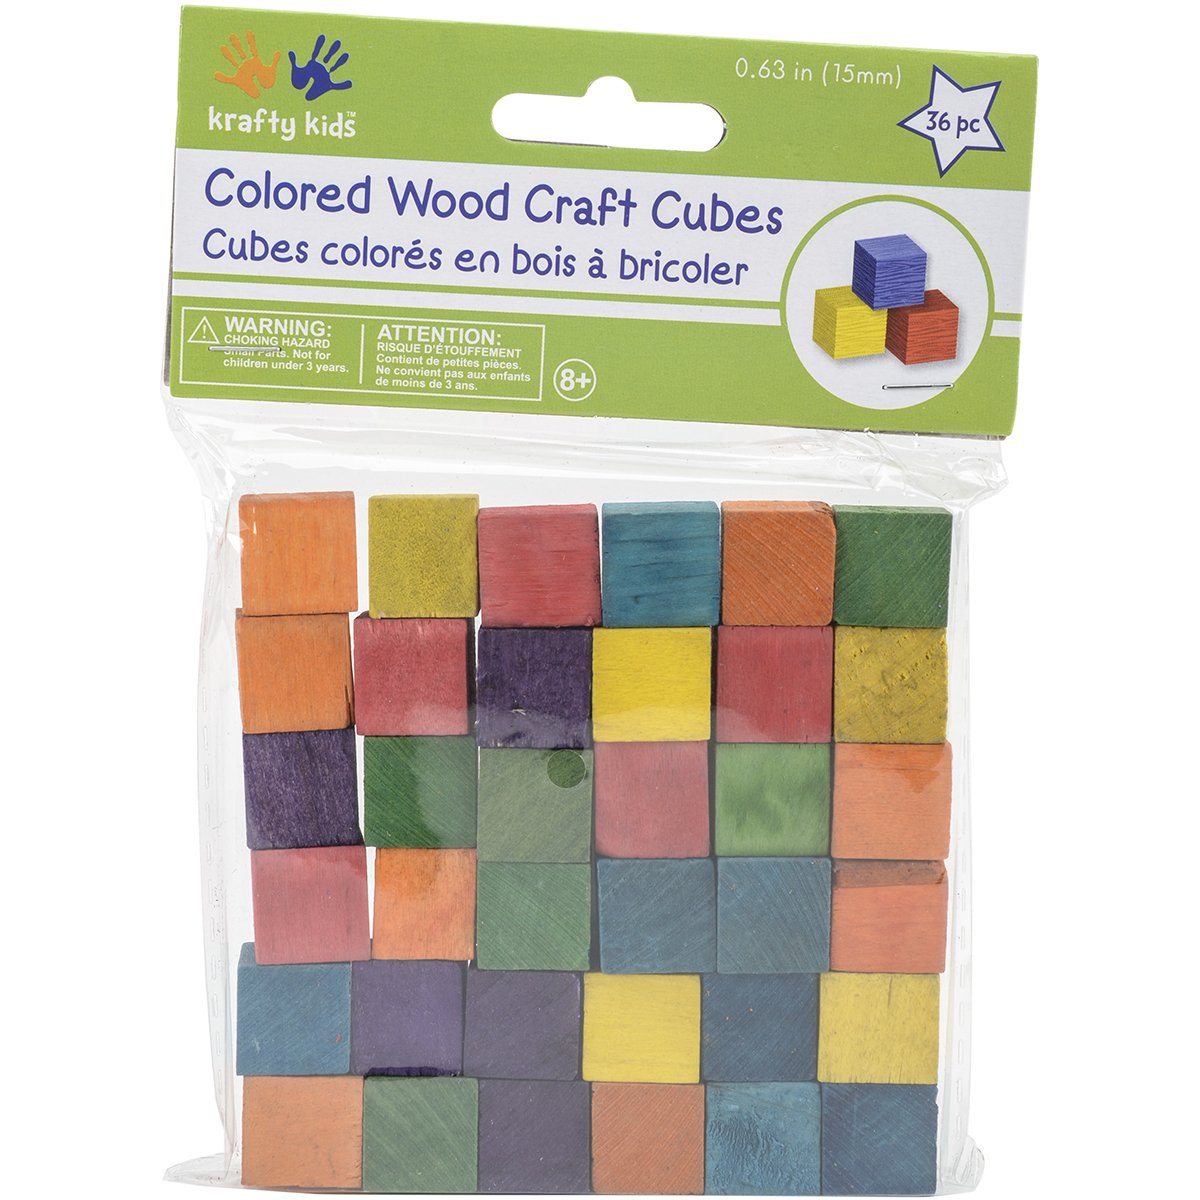 Child craft wooden blocks - Amazon Com Craftwood Wooden Cubes 5 8 36 Pkg Colored Arts Crafts Sewing